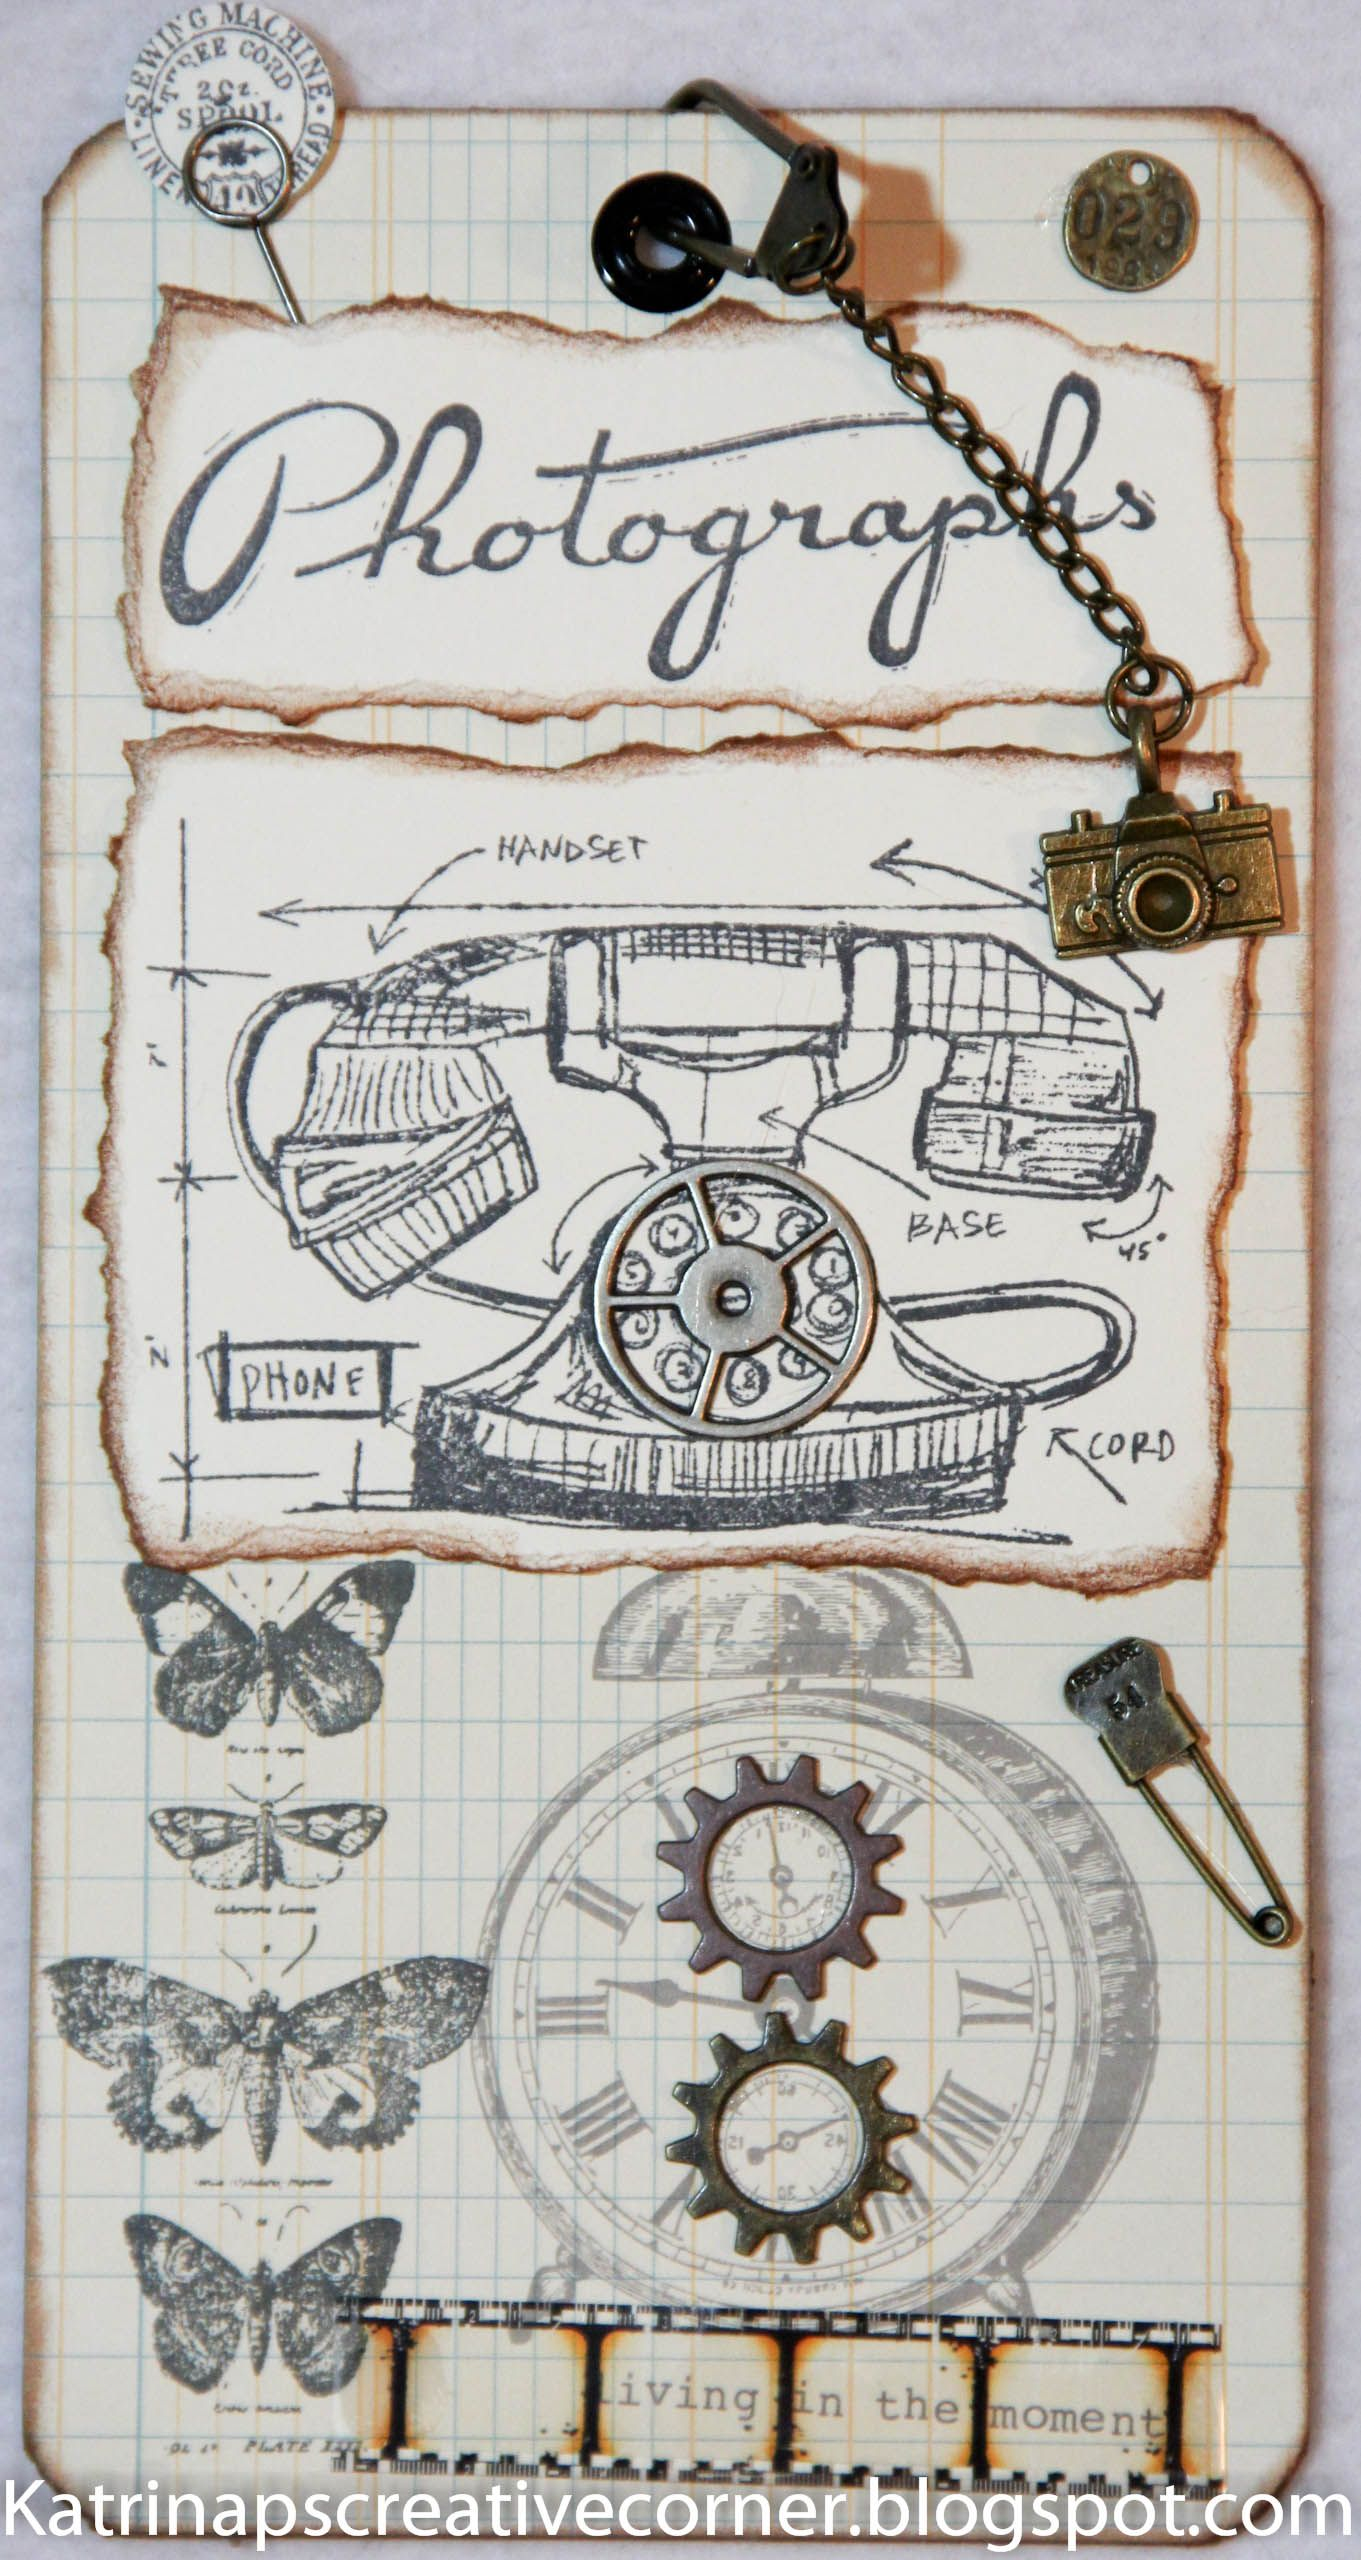 Here is a tag I made for a swap I participate in on Facebook called Create Exchange.  The theme was Tim Holtz.